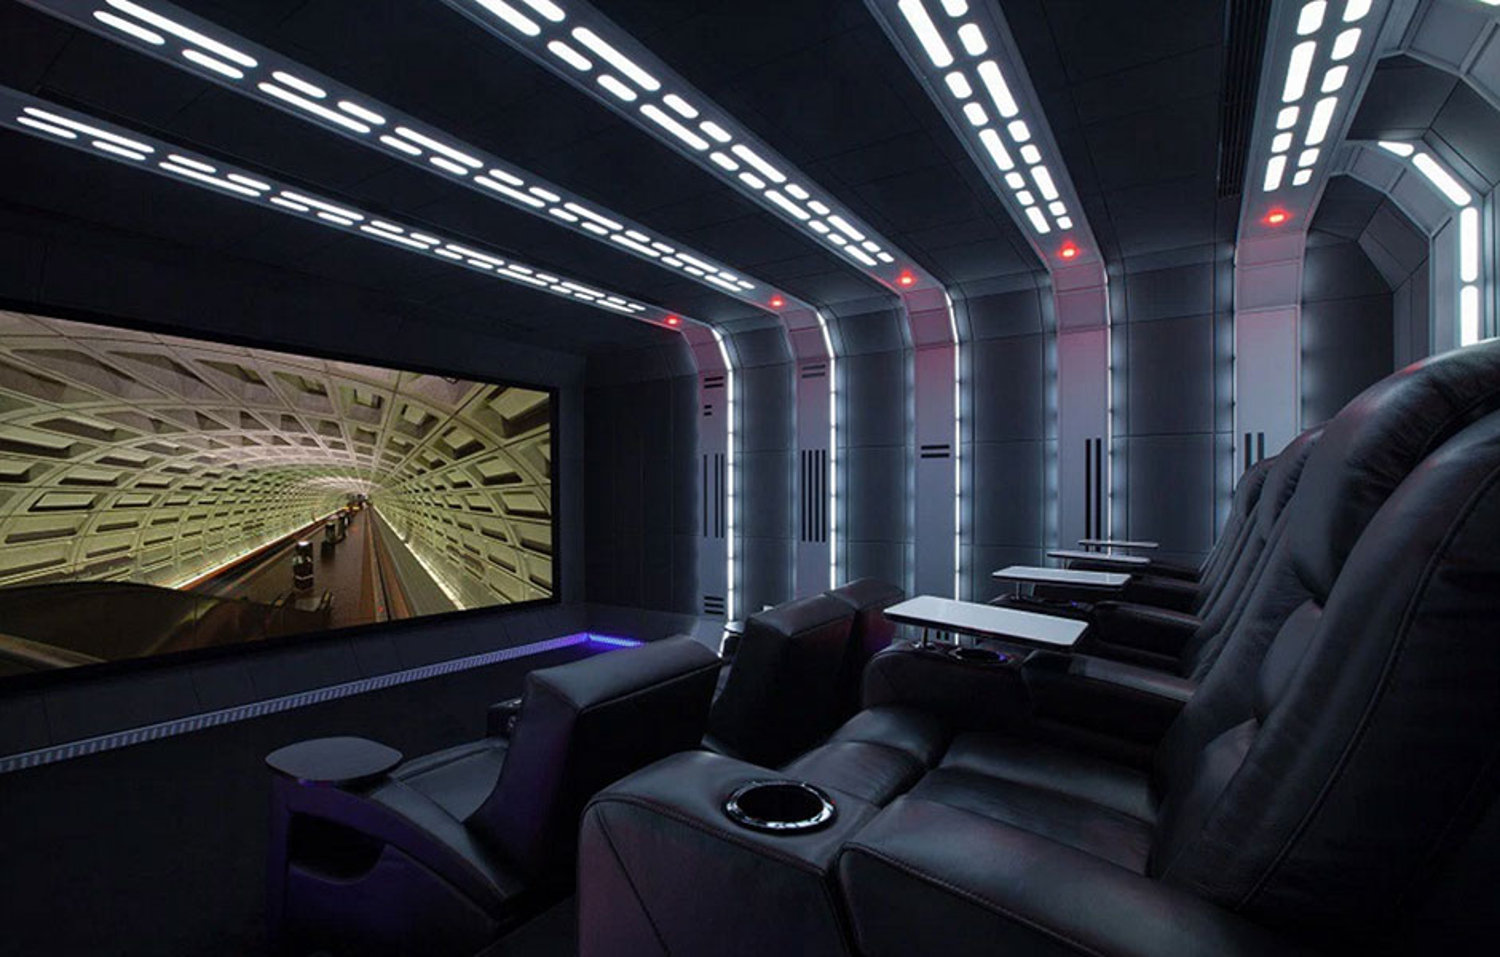 Star wars home theater features sony 4k video projector - Home theater design dallas inspired ...